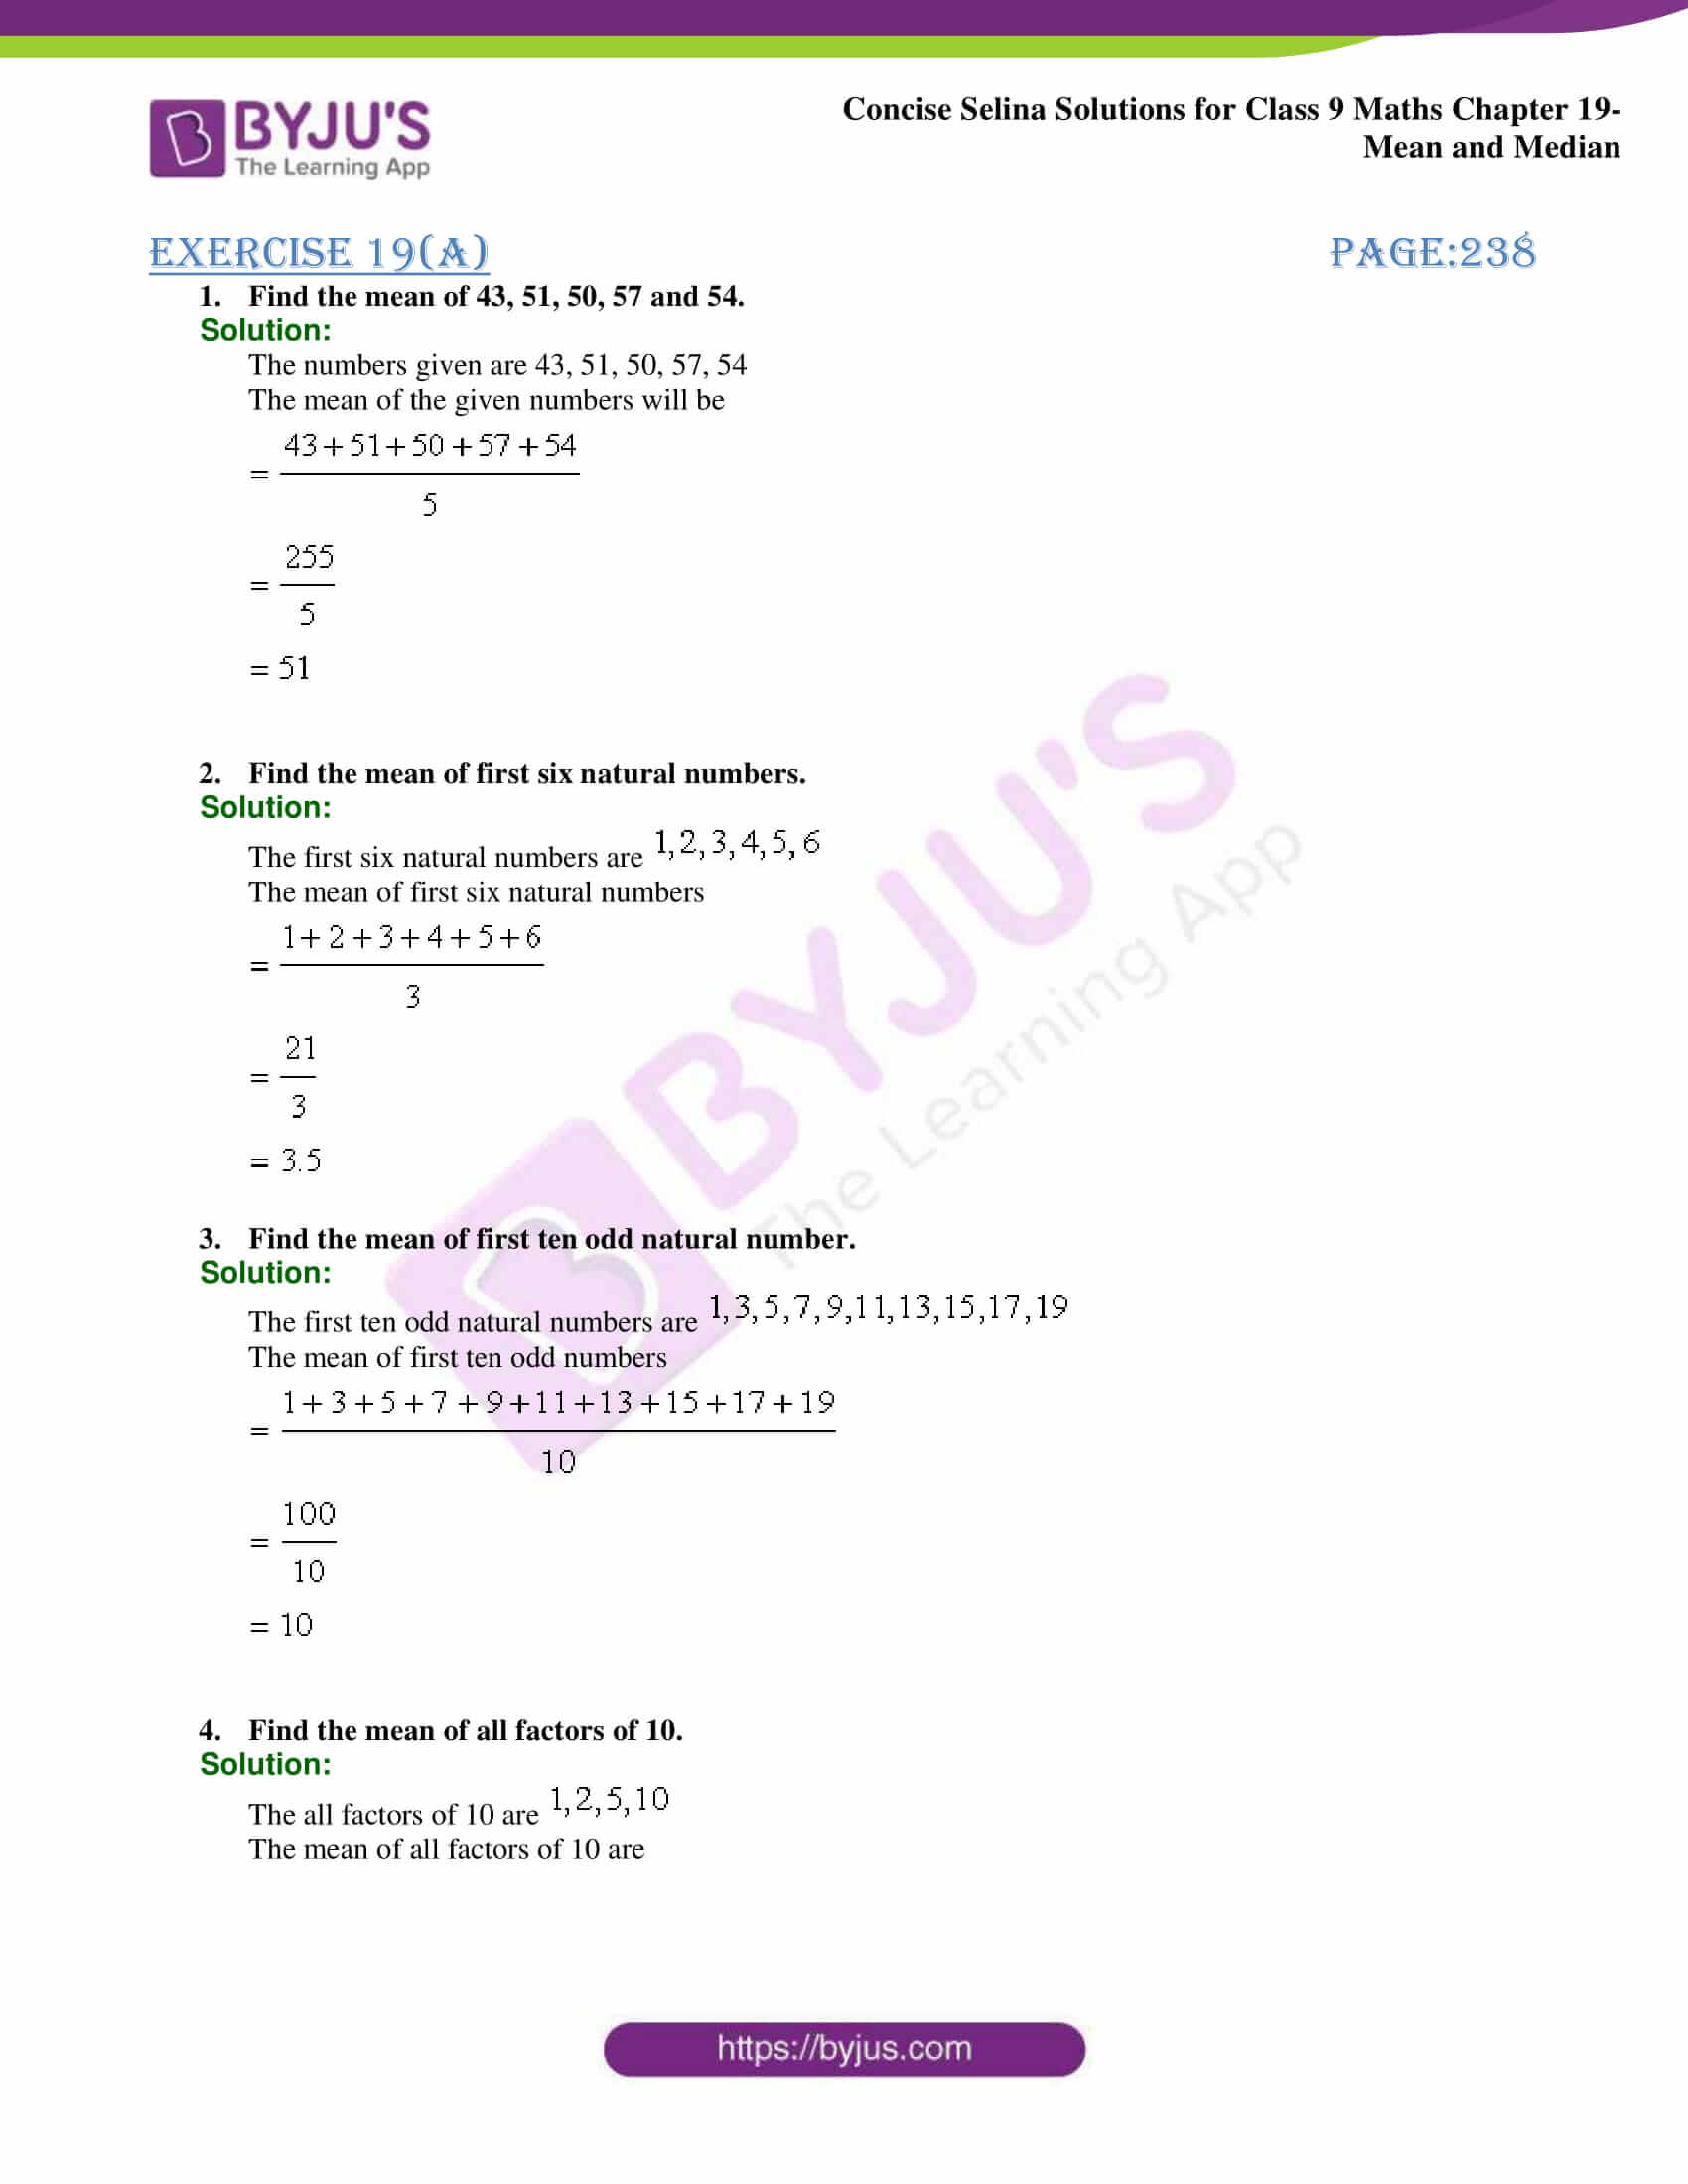 Concise Selina Solutions Class 9 Maths Chapter 19 Mean and Median part 01